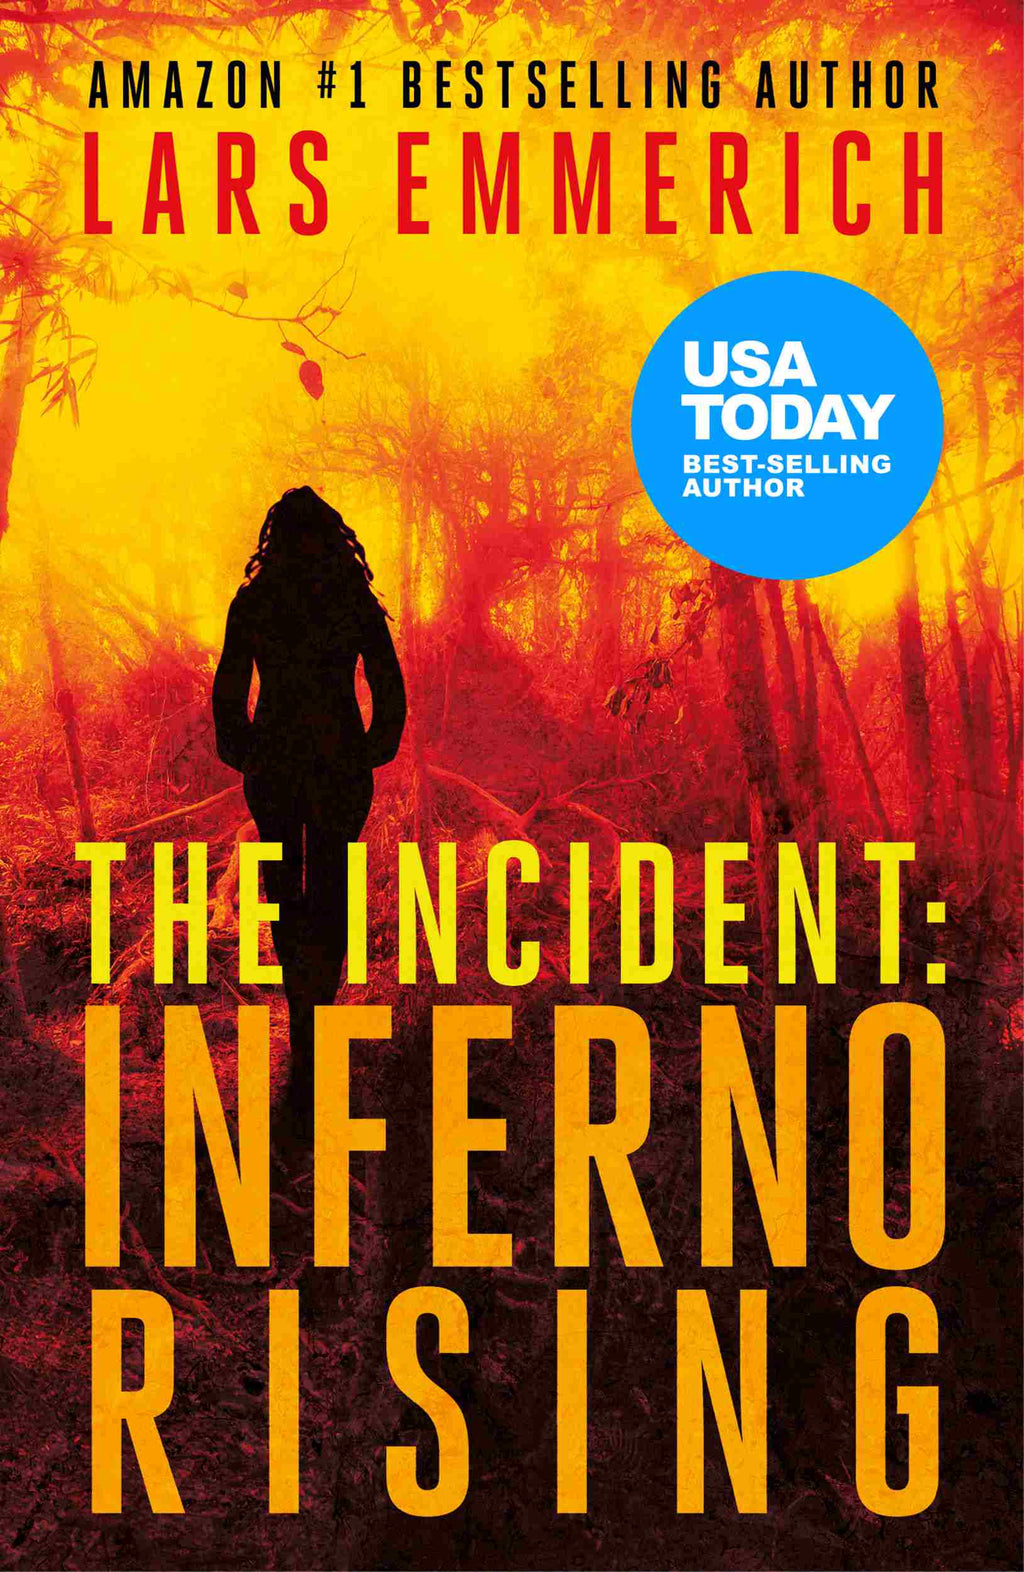 The Incident: Inferno Rising (Paperback)